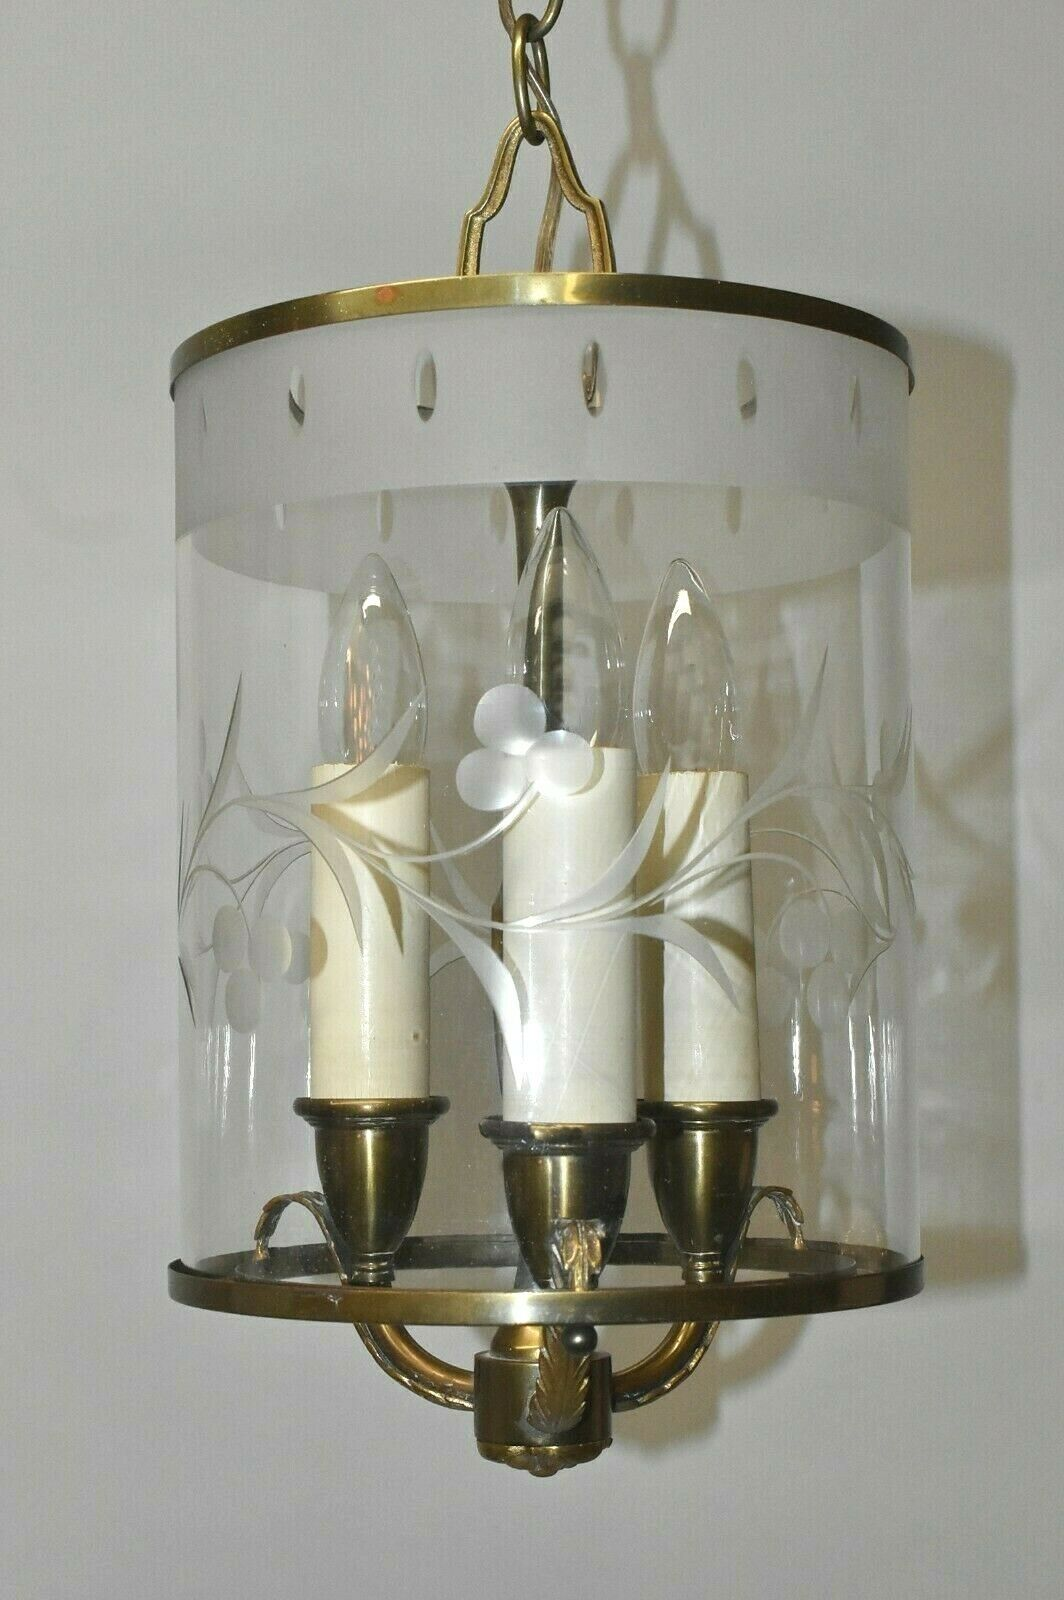 Brass With Etched Glass Cylinder Chandelier Light Fixture